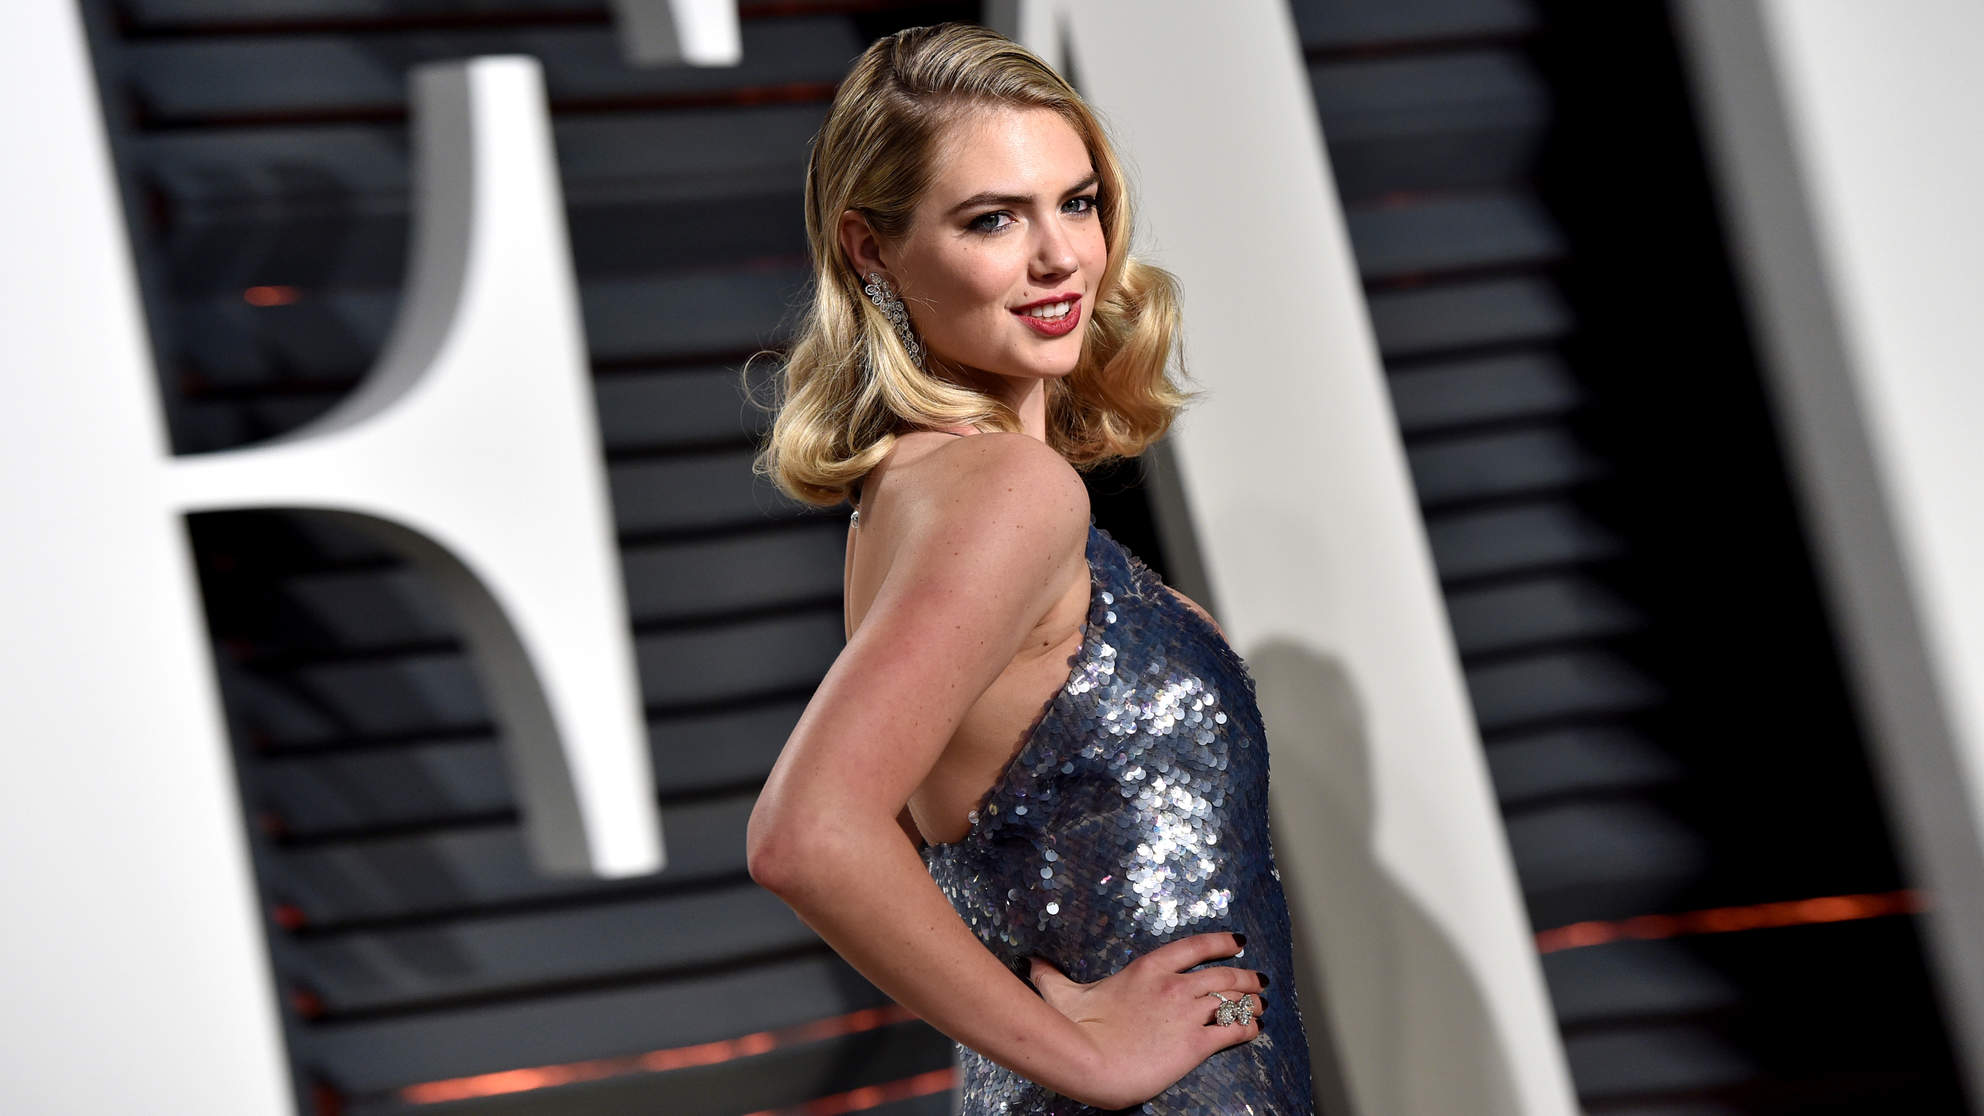 I Ate Like Supermodel Kate Upton for Three Days—and It Wasn't That Hard